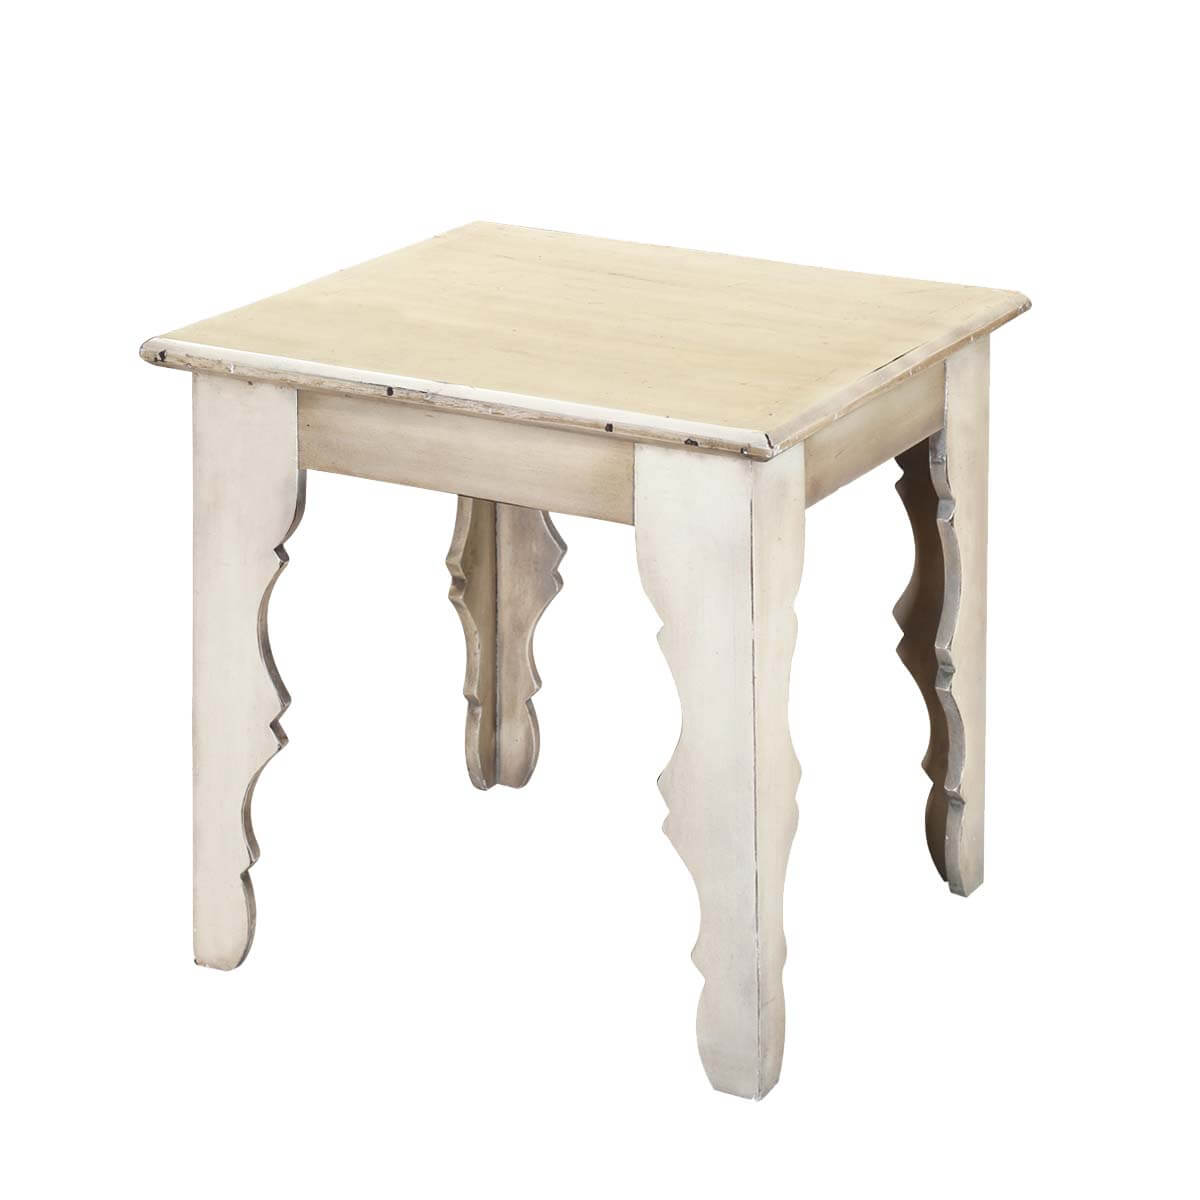 winter white rustic mango wood square accent end table teal sofa rectangular nest tables easy fruity mixed drinks counter height kitchen with storage wide extra large skeleton